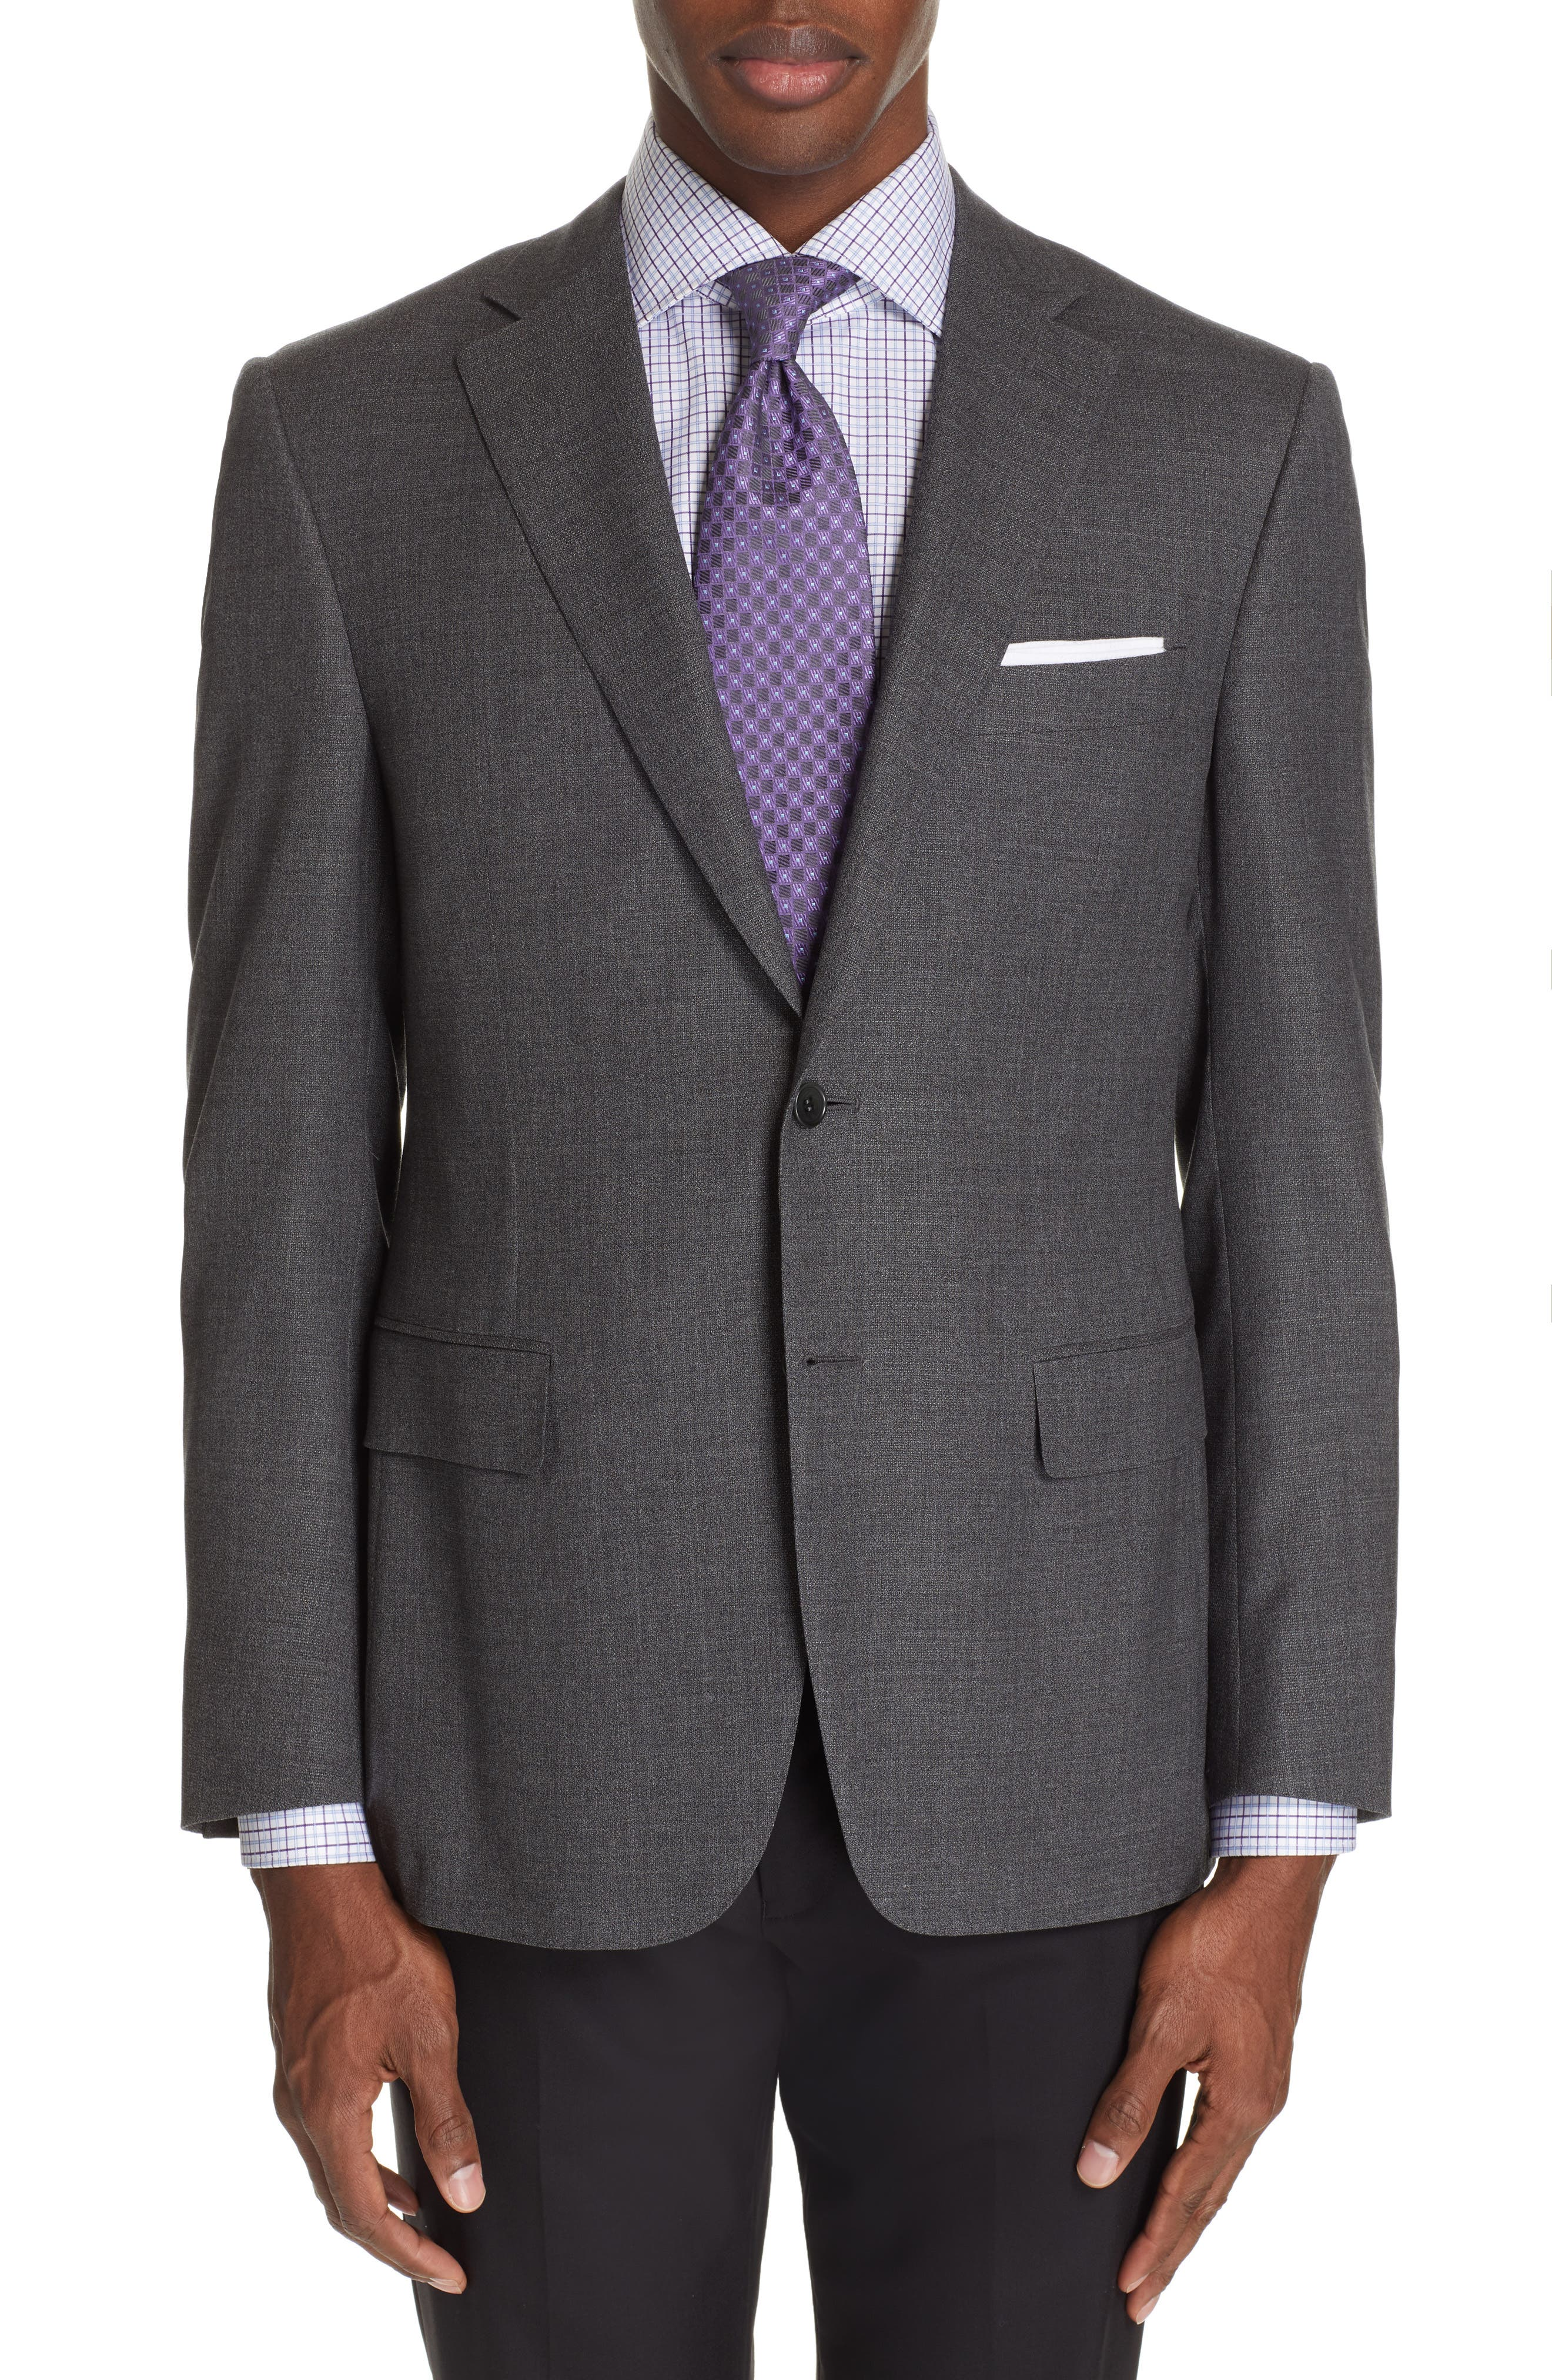 Sienna Classic Fit Solid Wool Sport Coat,                             Main thumbnail 1, color,                             CHARCOAL